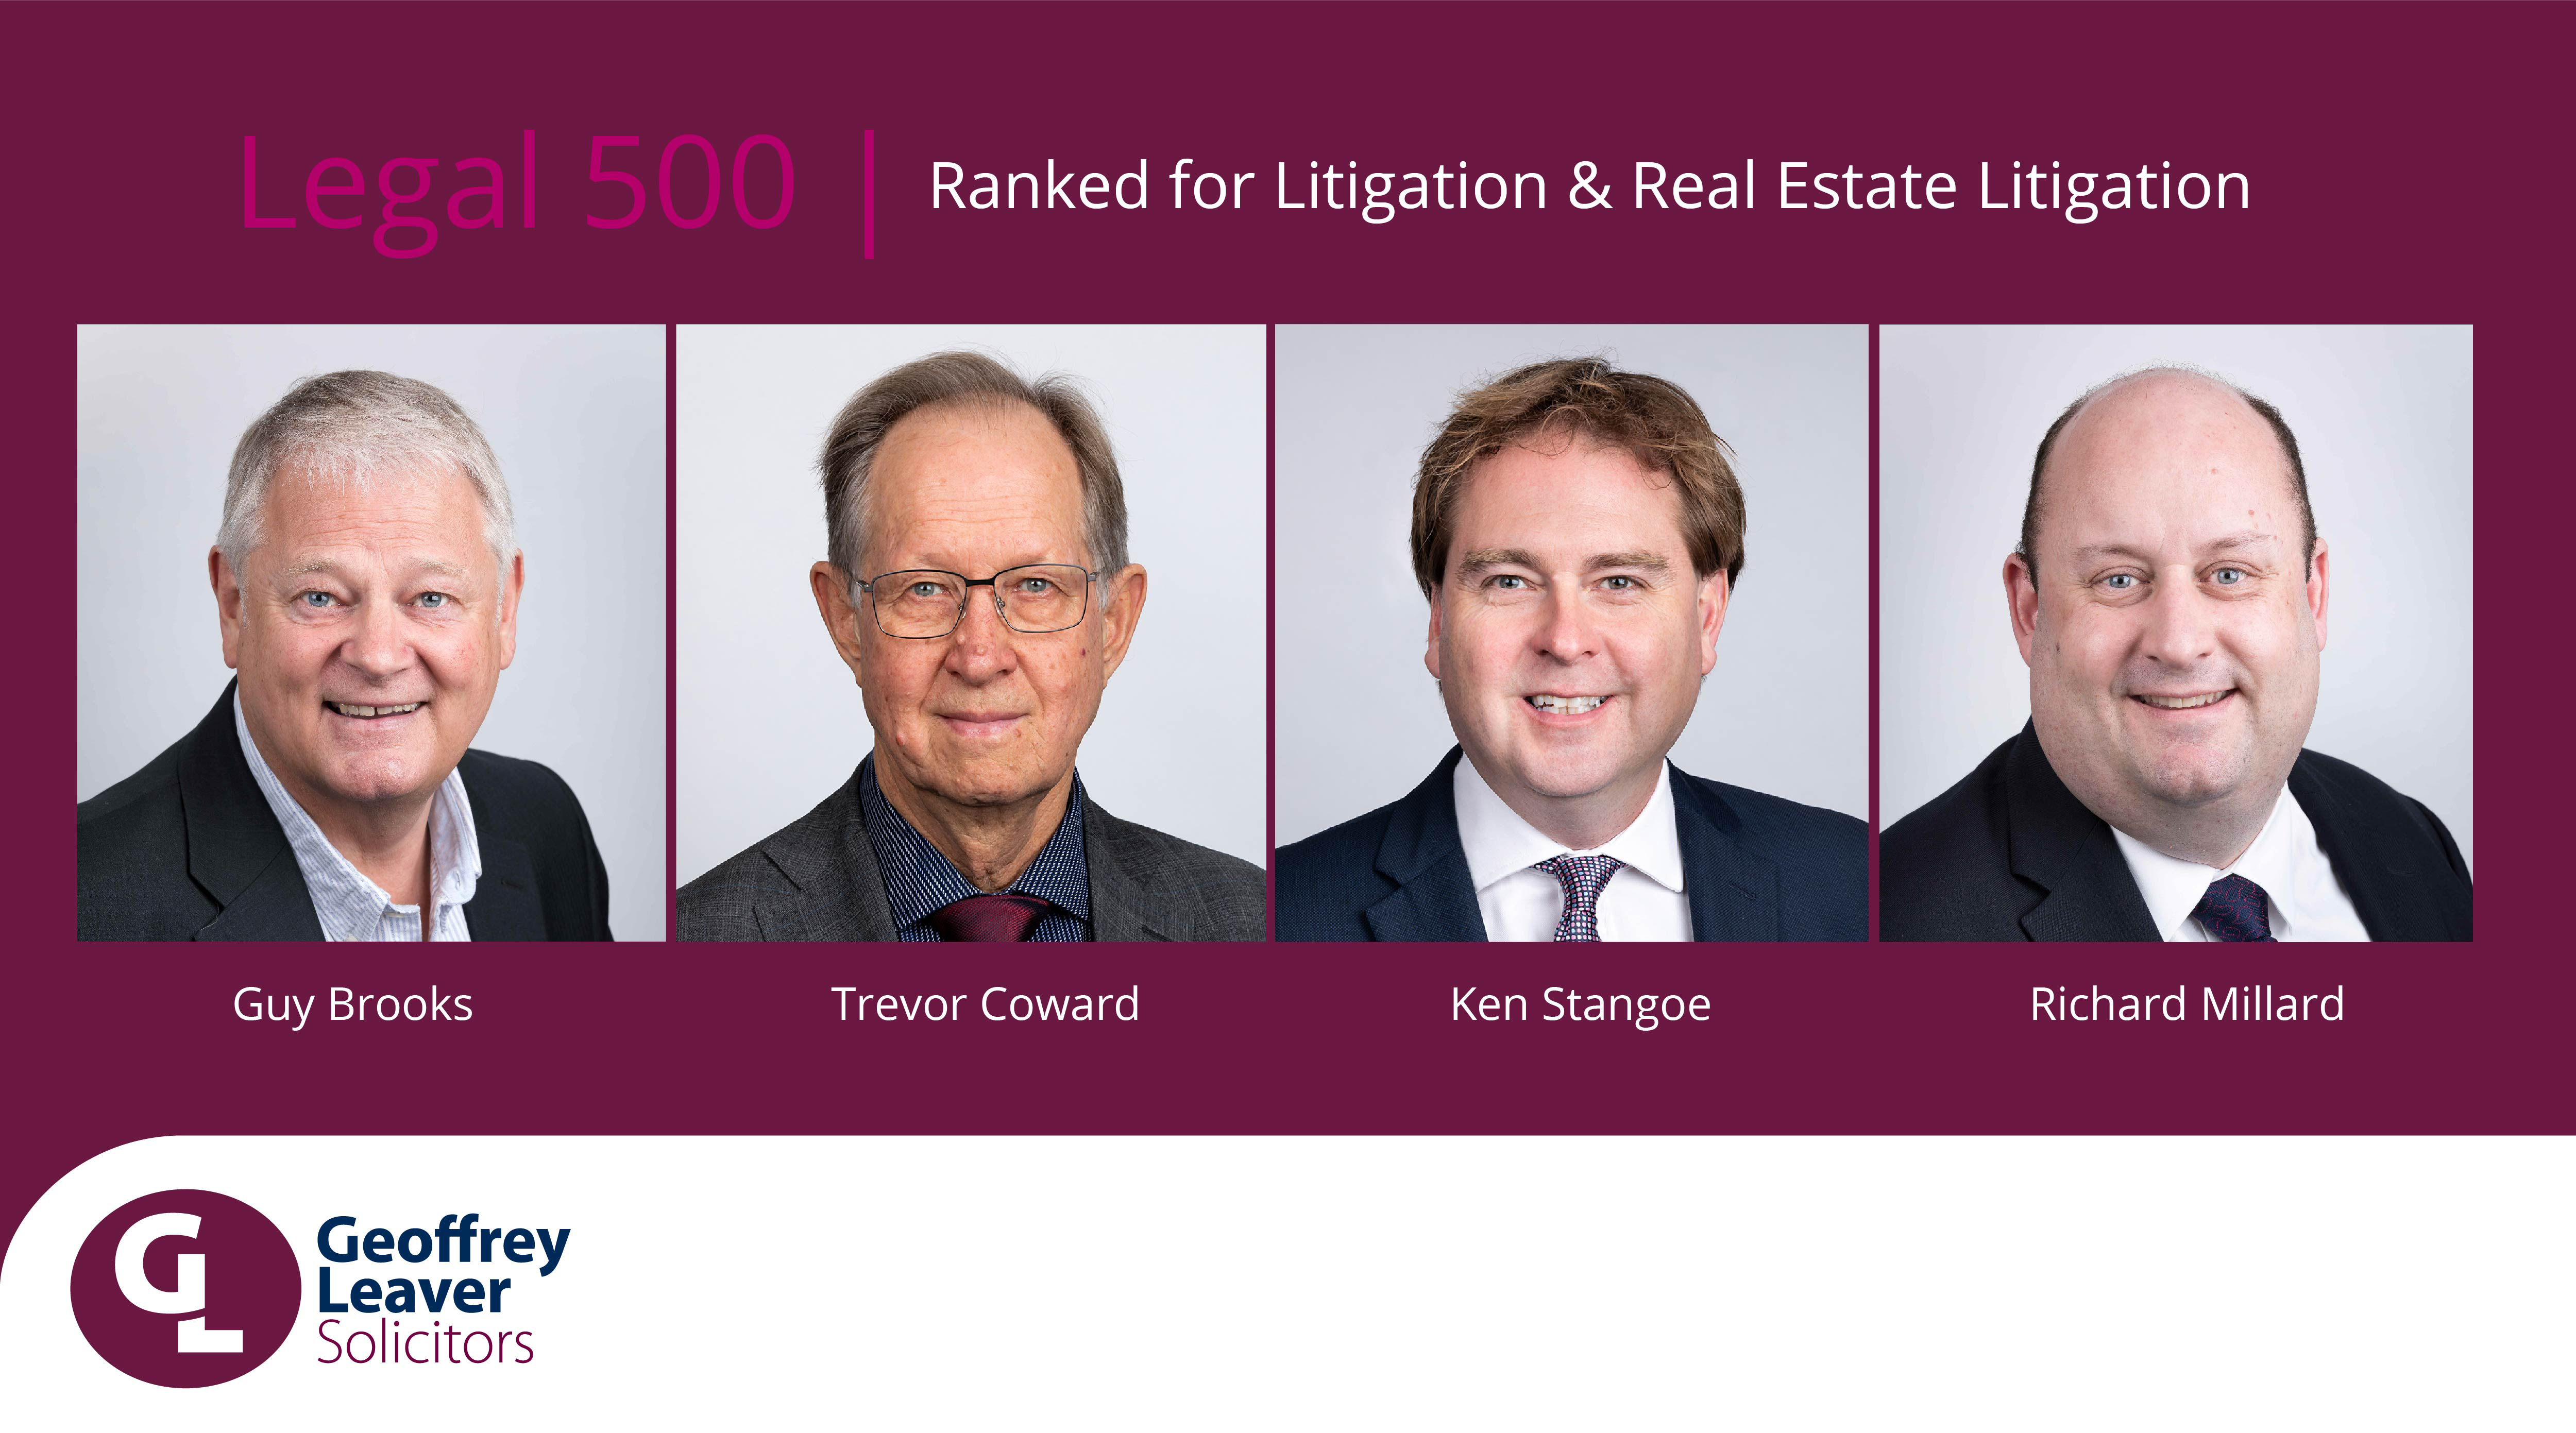 Geoffrey Leaver Solicitors ranked by Legal 500 2021